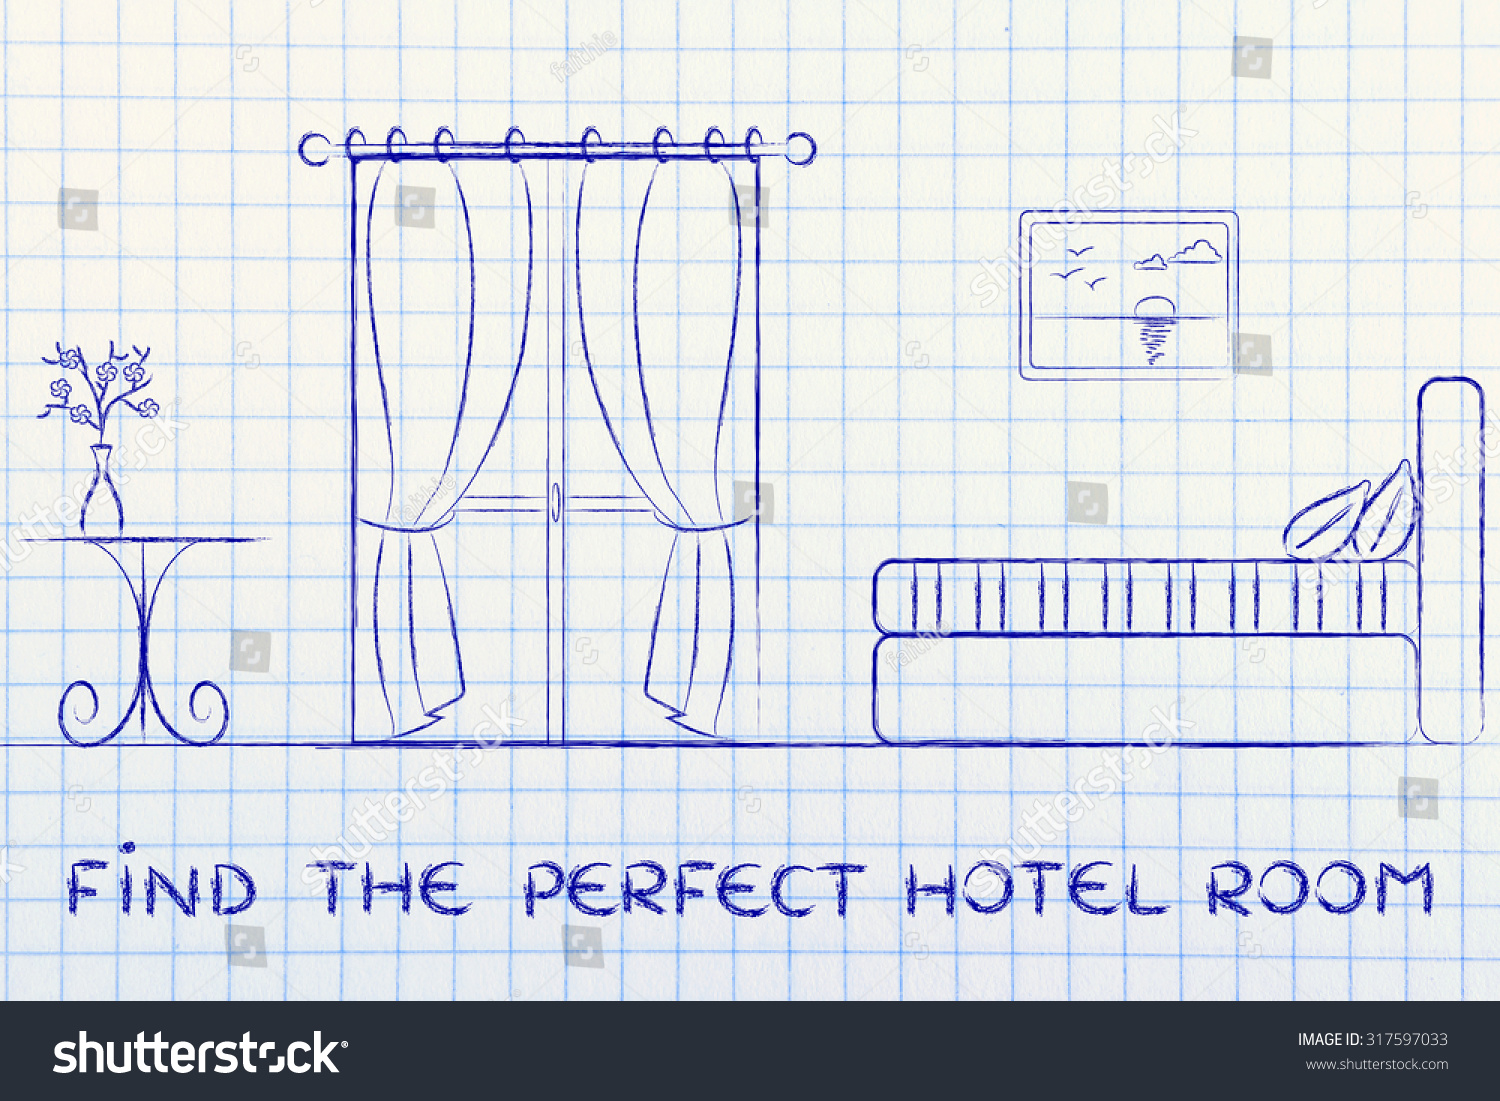 travel and accommodation industry: concept of hotel search illustration of room interior | EZ Canvas